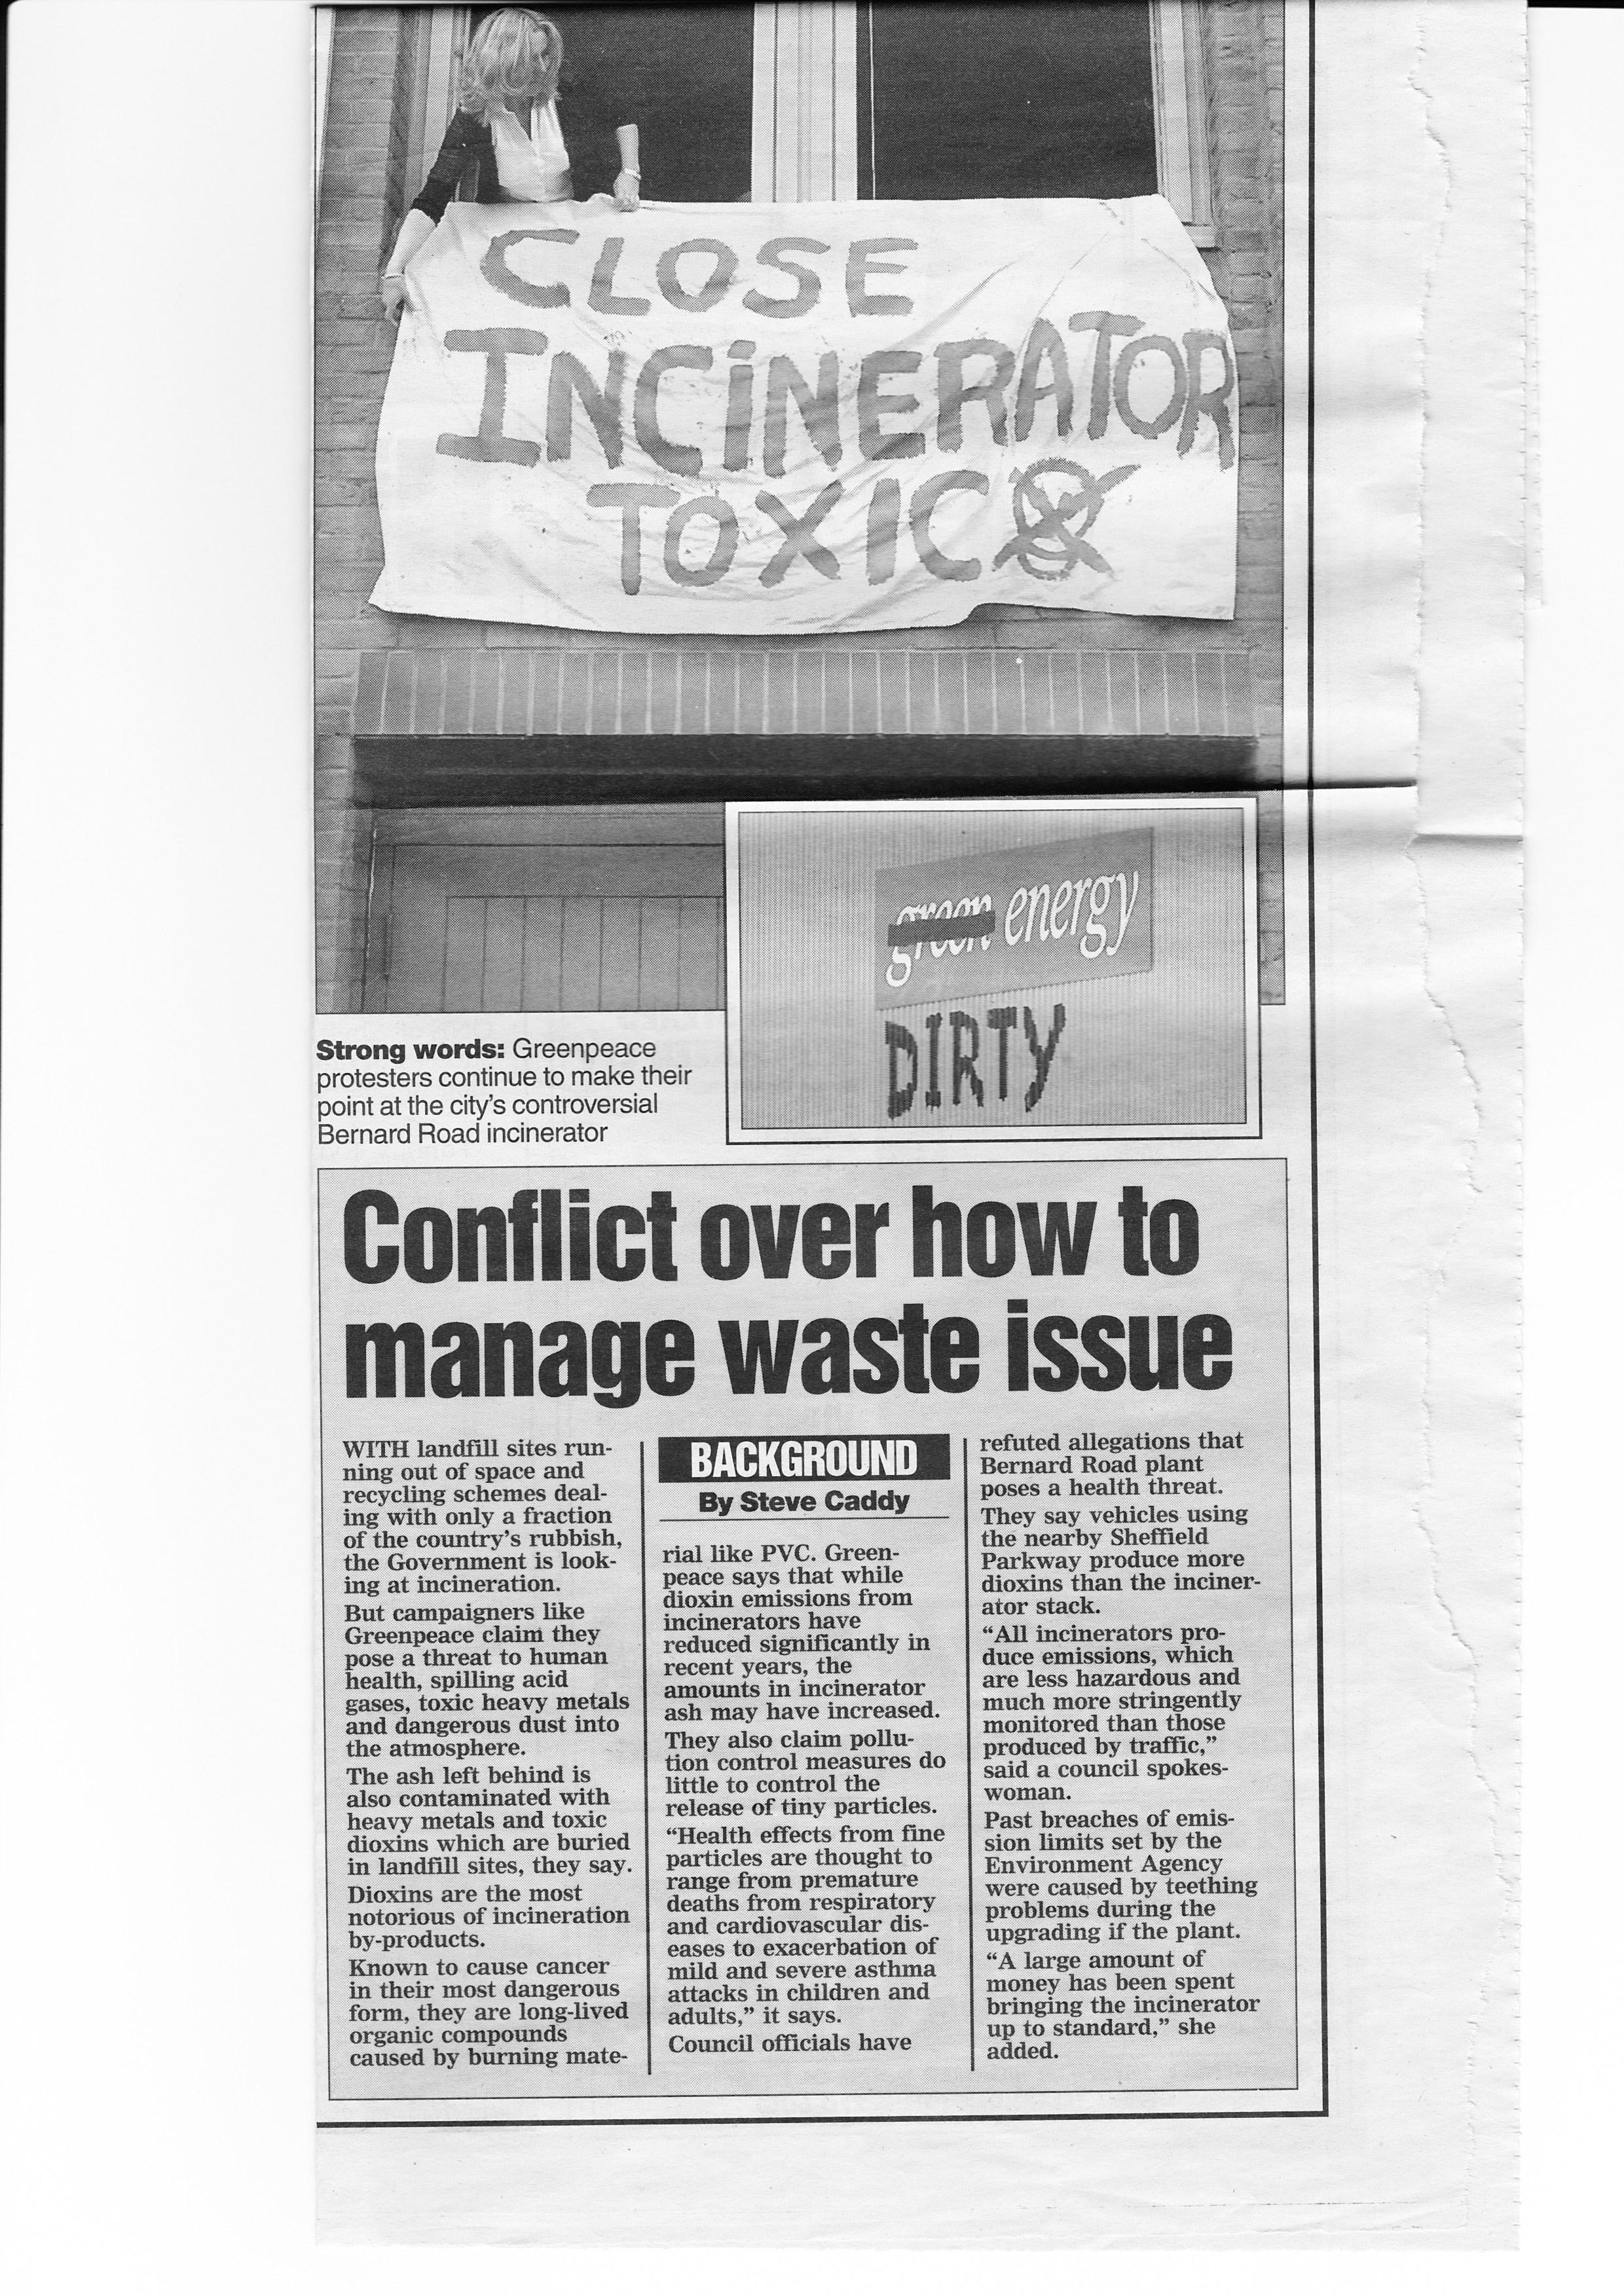 councilconflictoverwasteissues